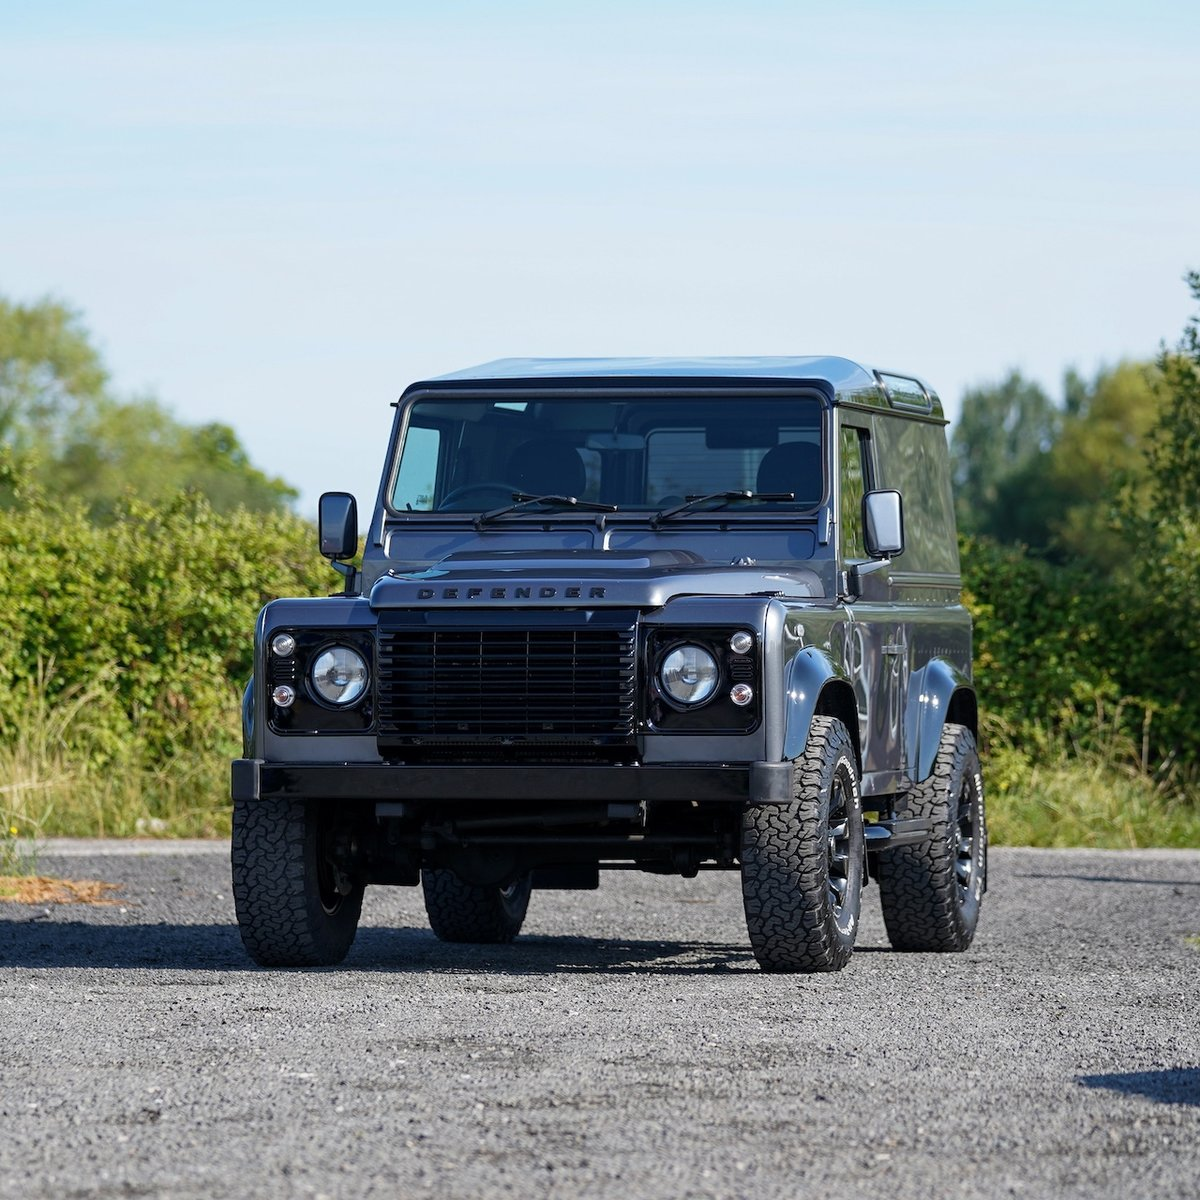 Land Rover Defender 90 2.2TD 2014 64 County Hardtop 1 Owner SOLD (picture 1 of 6)